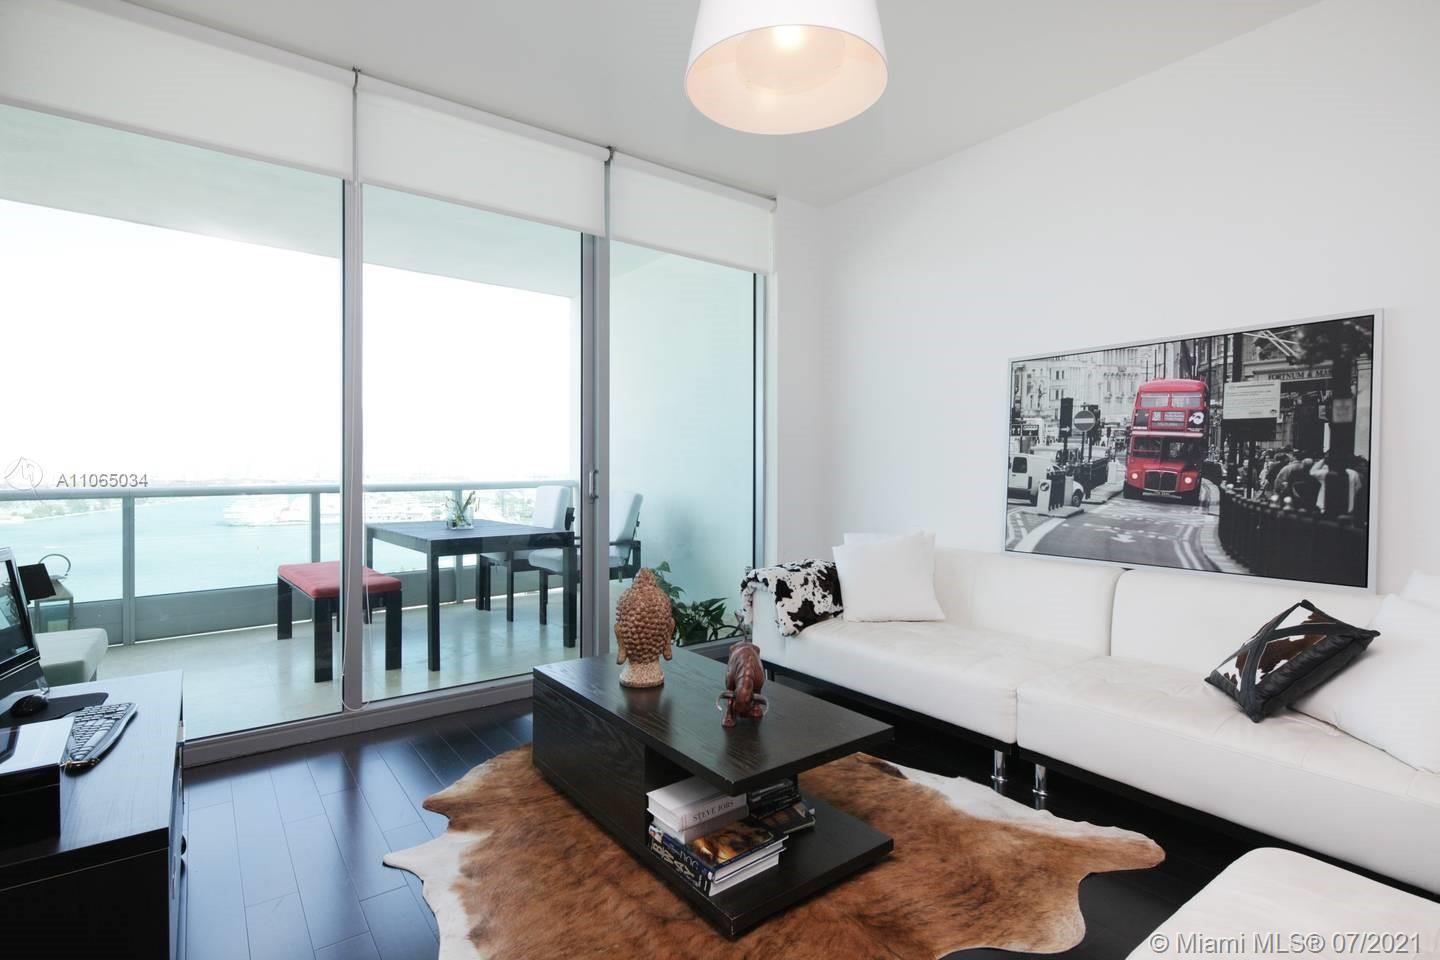 ENJOY IMPRESSIVE MIAMI VIEWS, DIRECT OCEAN AND STUNNING BAY VIEWS FROM THE PRIVATE WIDE BALCONY OF T